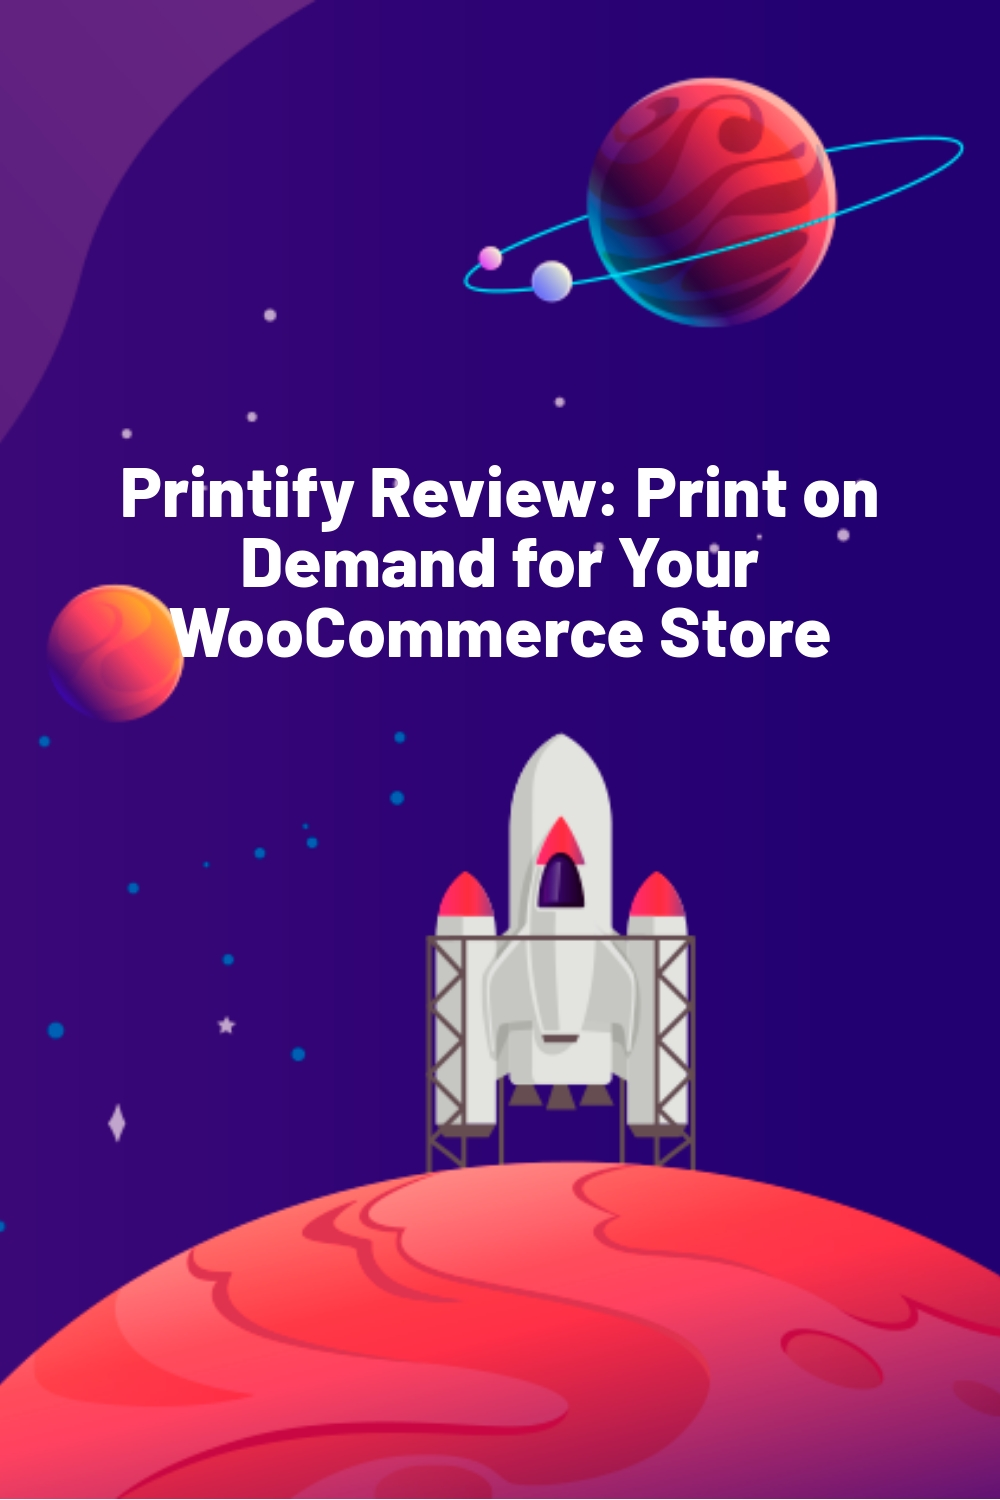 Printify Review: Print on Demand for Your WooCommerce Store